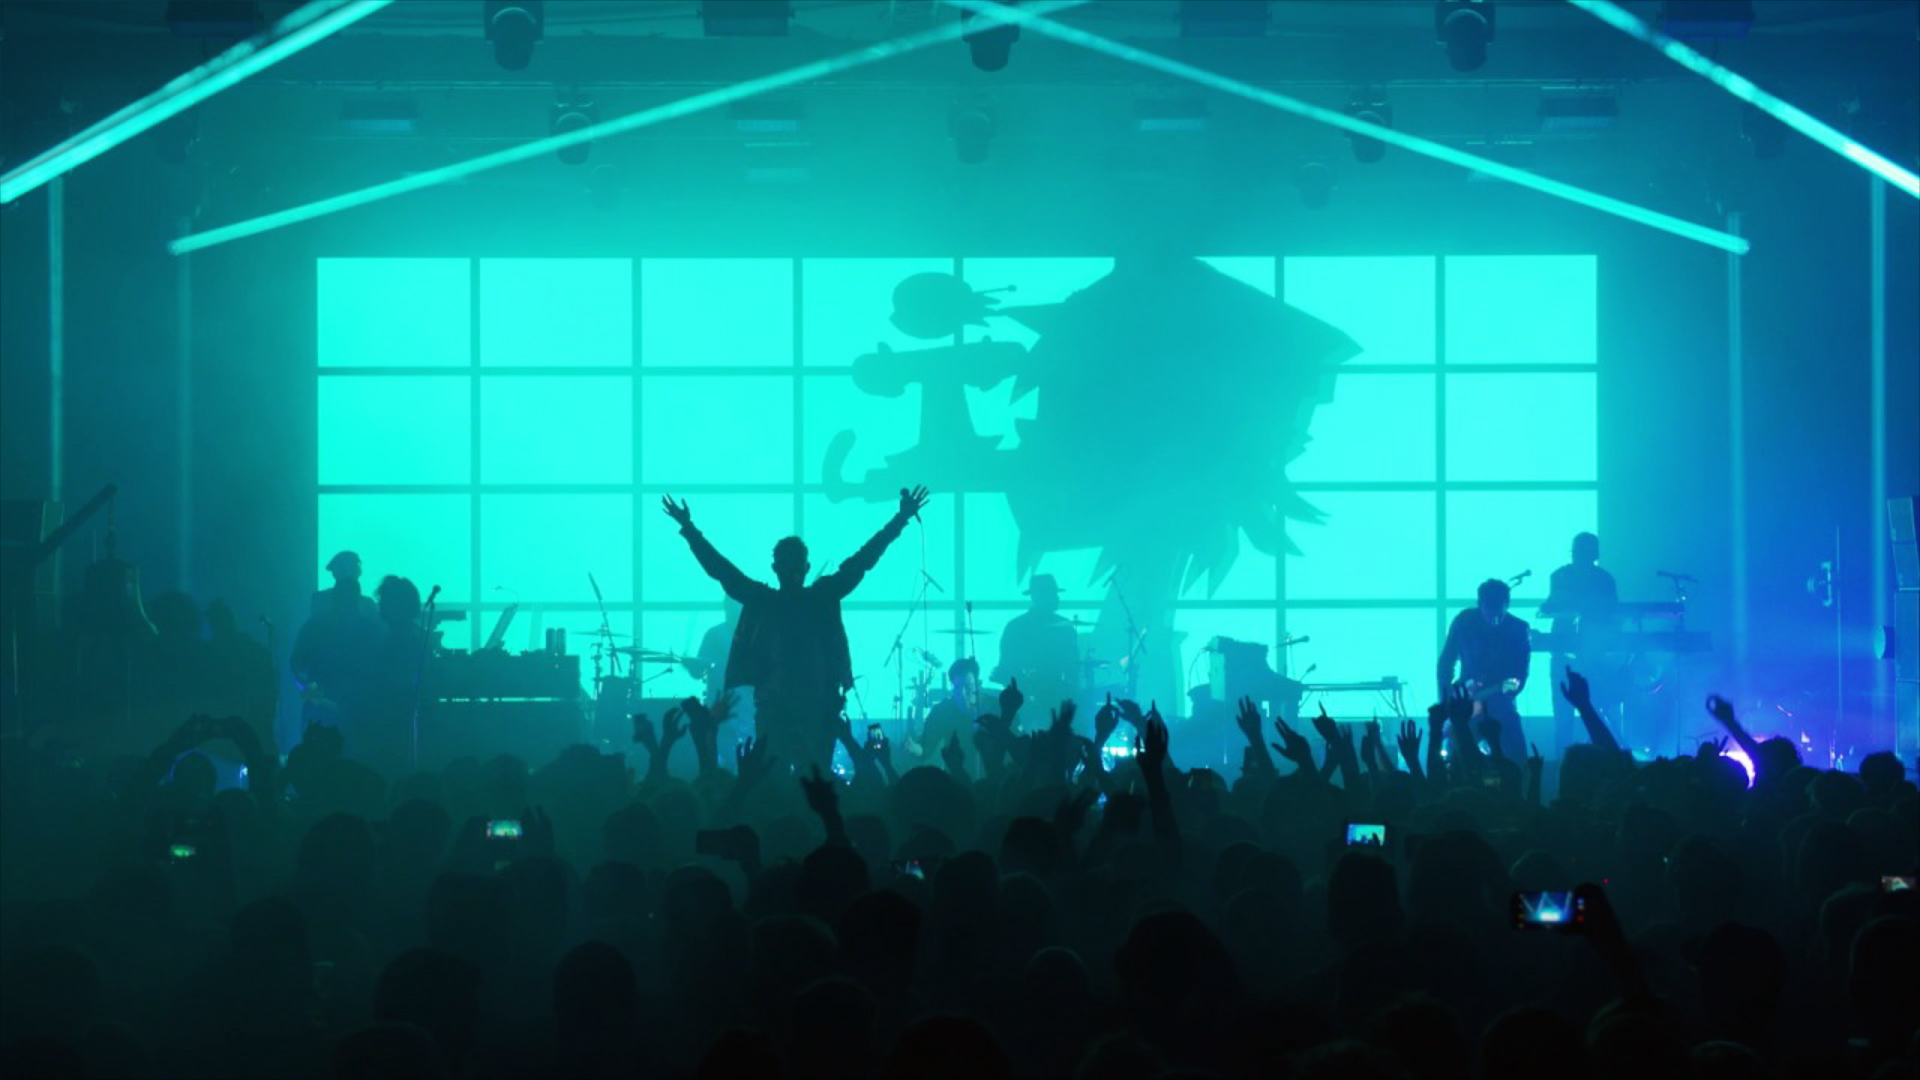 Gorillaz - Humanz Tour Visuals